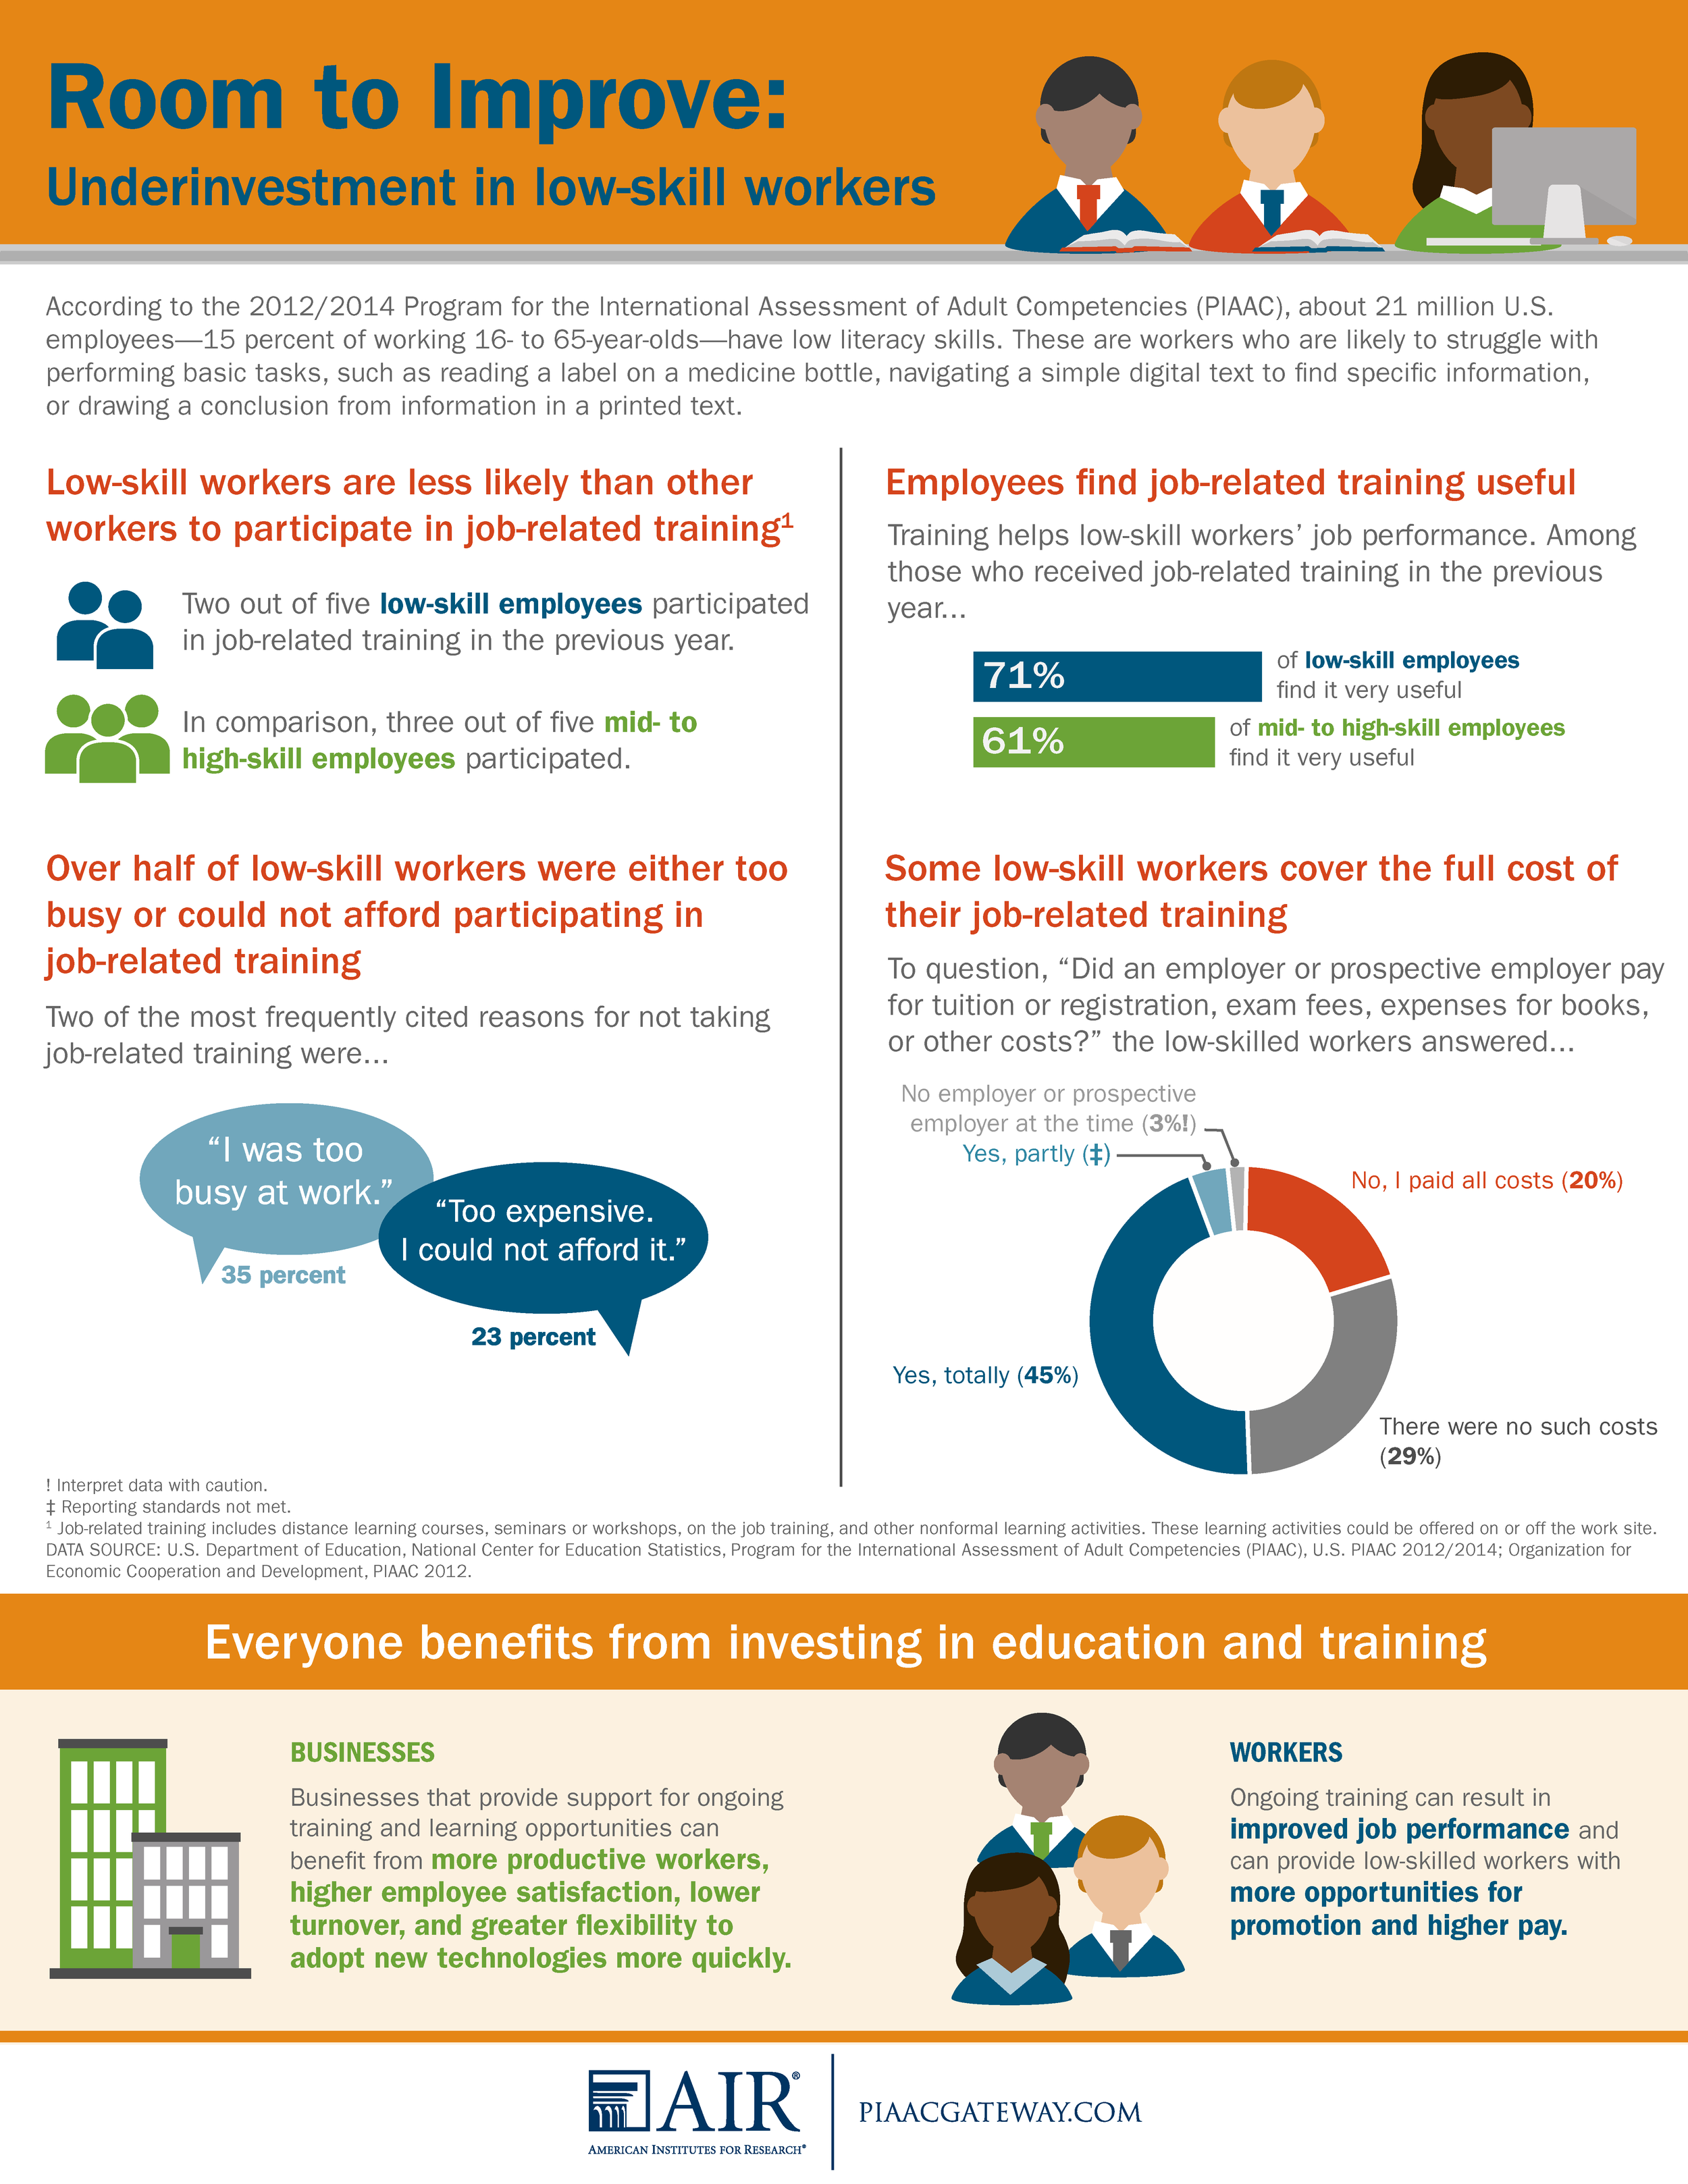 low-skilled adults, employment status, literacy, digital literacy, training